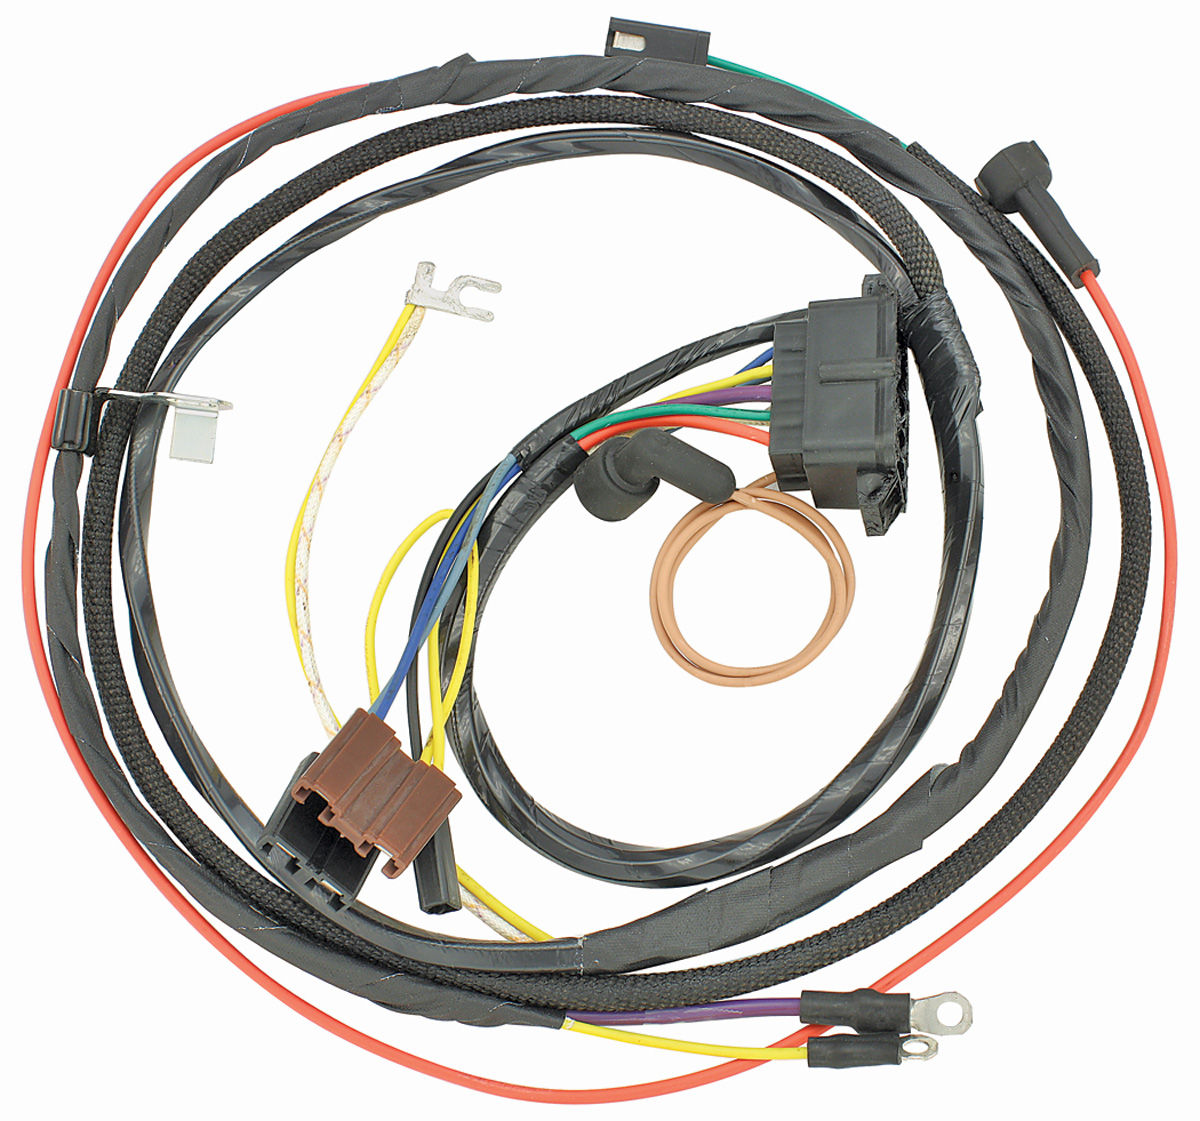 medium resolution of 1972 chevelle engine wiring harness trusted wiring diagram 1966 chevelle distributor wiring 1966 chevelle ss wiring diagram